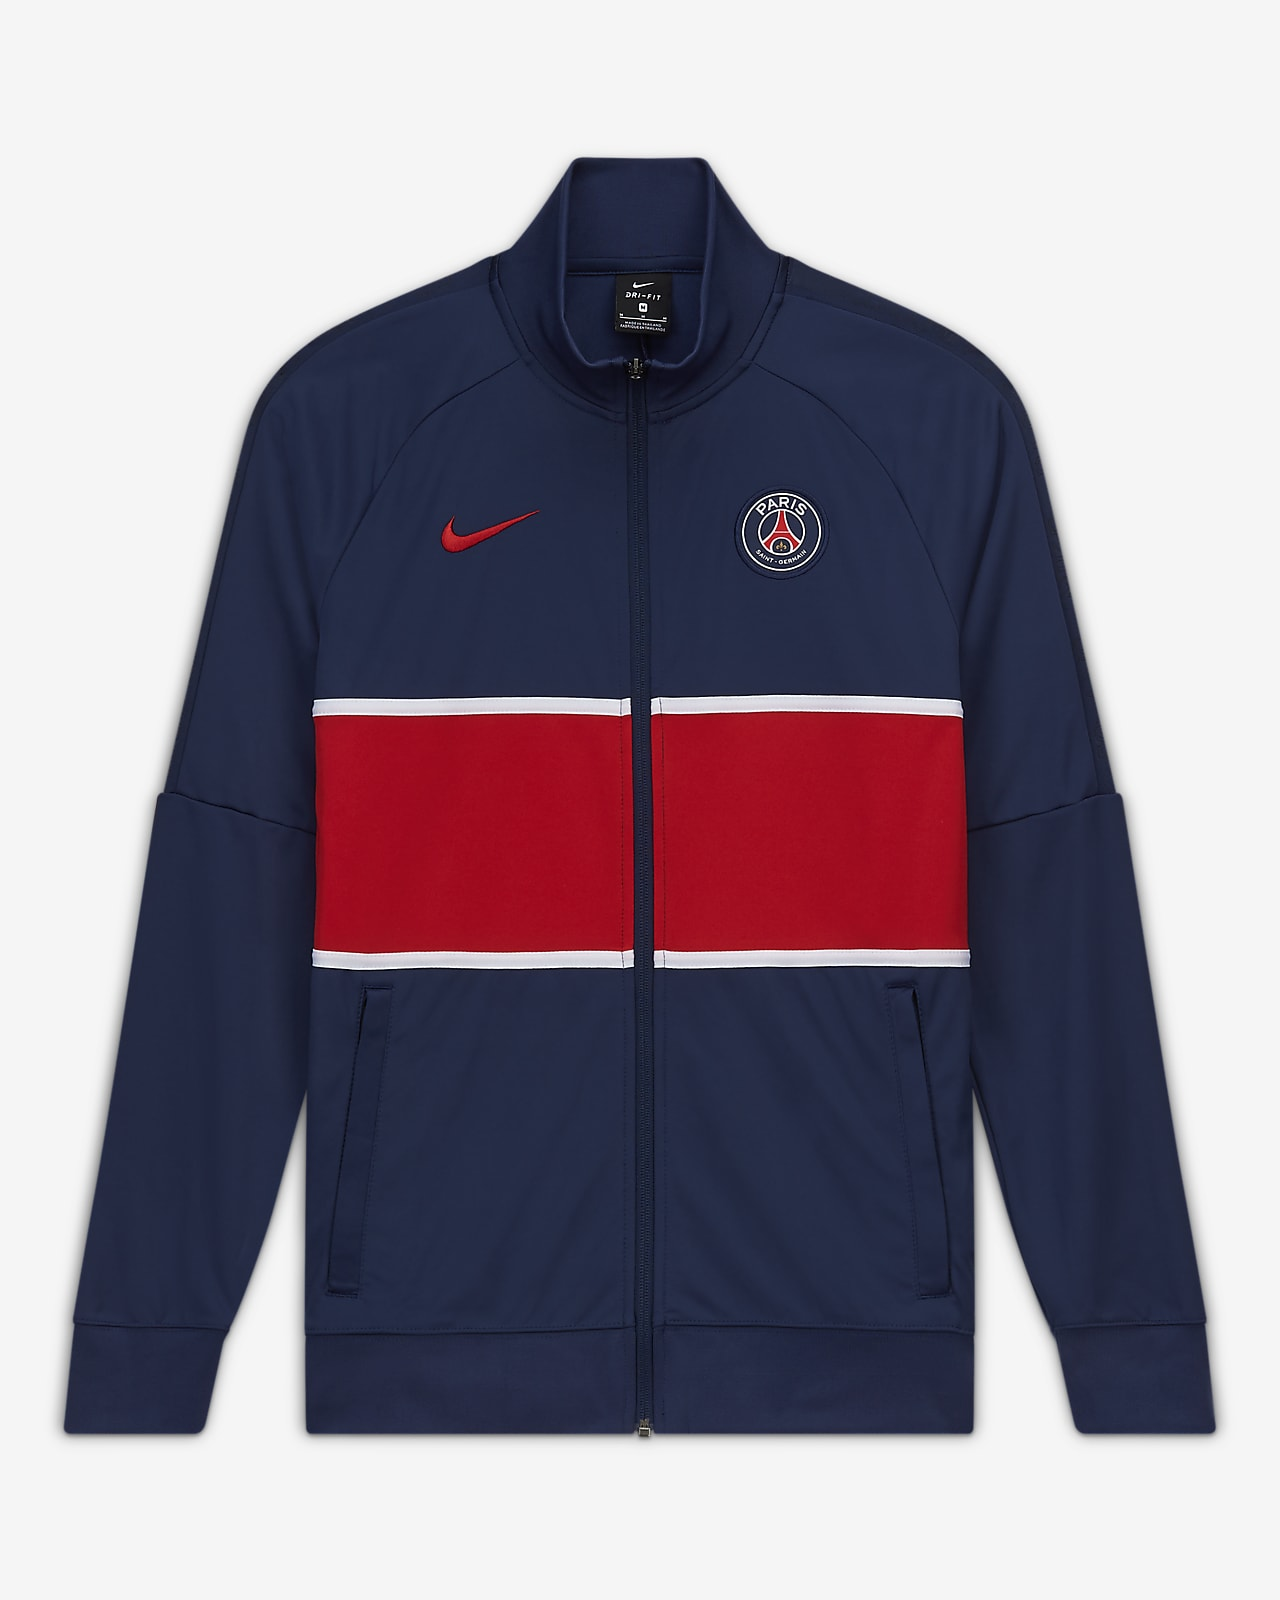 Paris Saint-Germain Men's Tracksuit Jacket